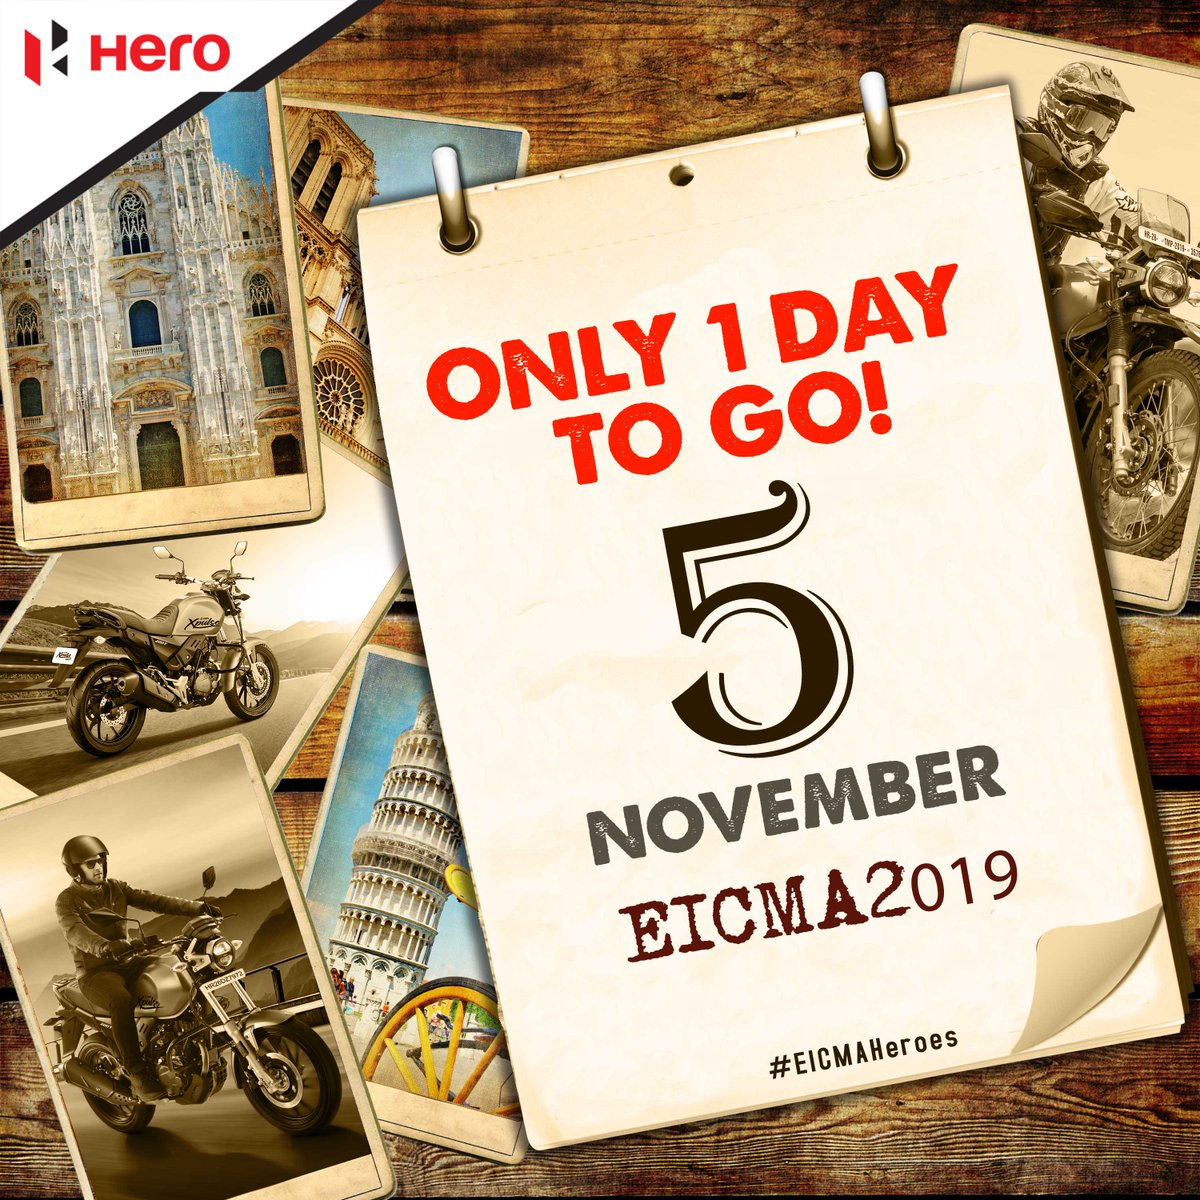 Only 1 day to go EICMA 2019 starts November 5. EICMAHEROES https t.co GdhMI3Ek35